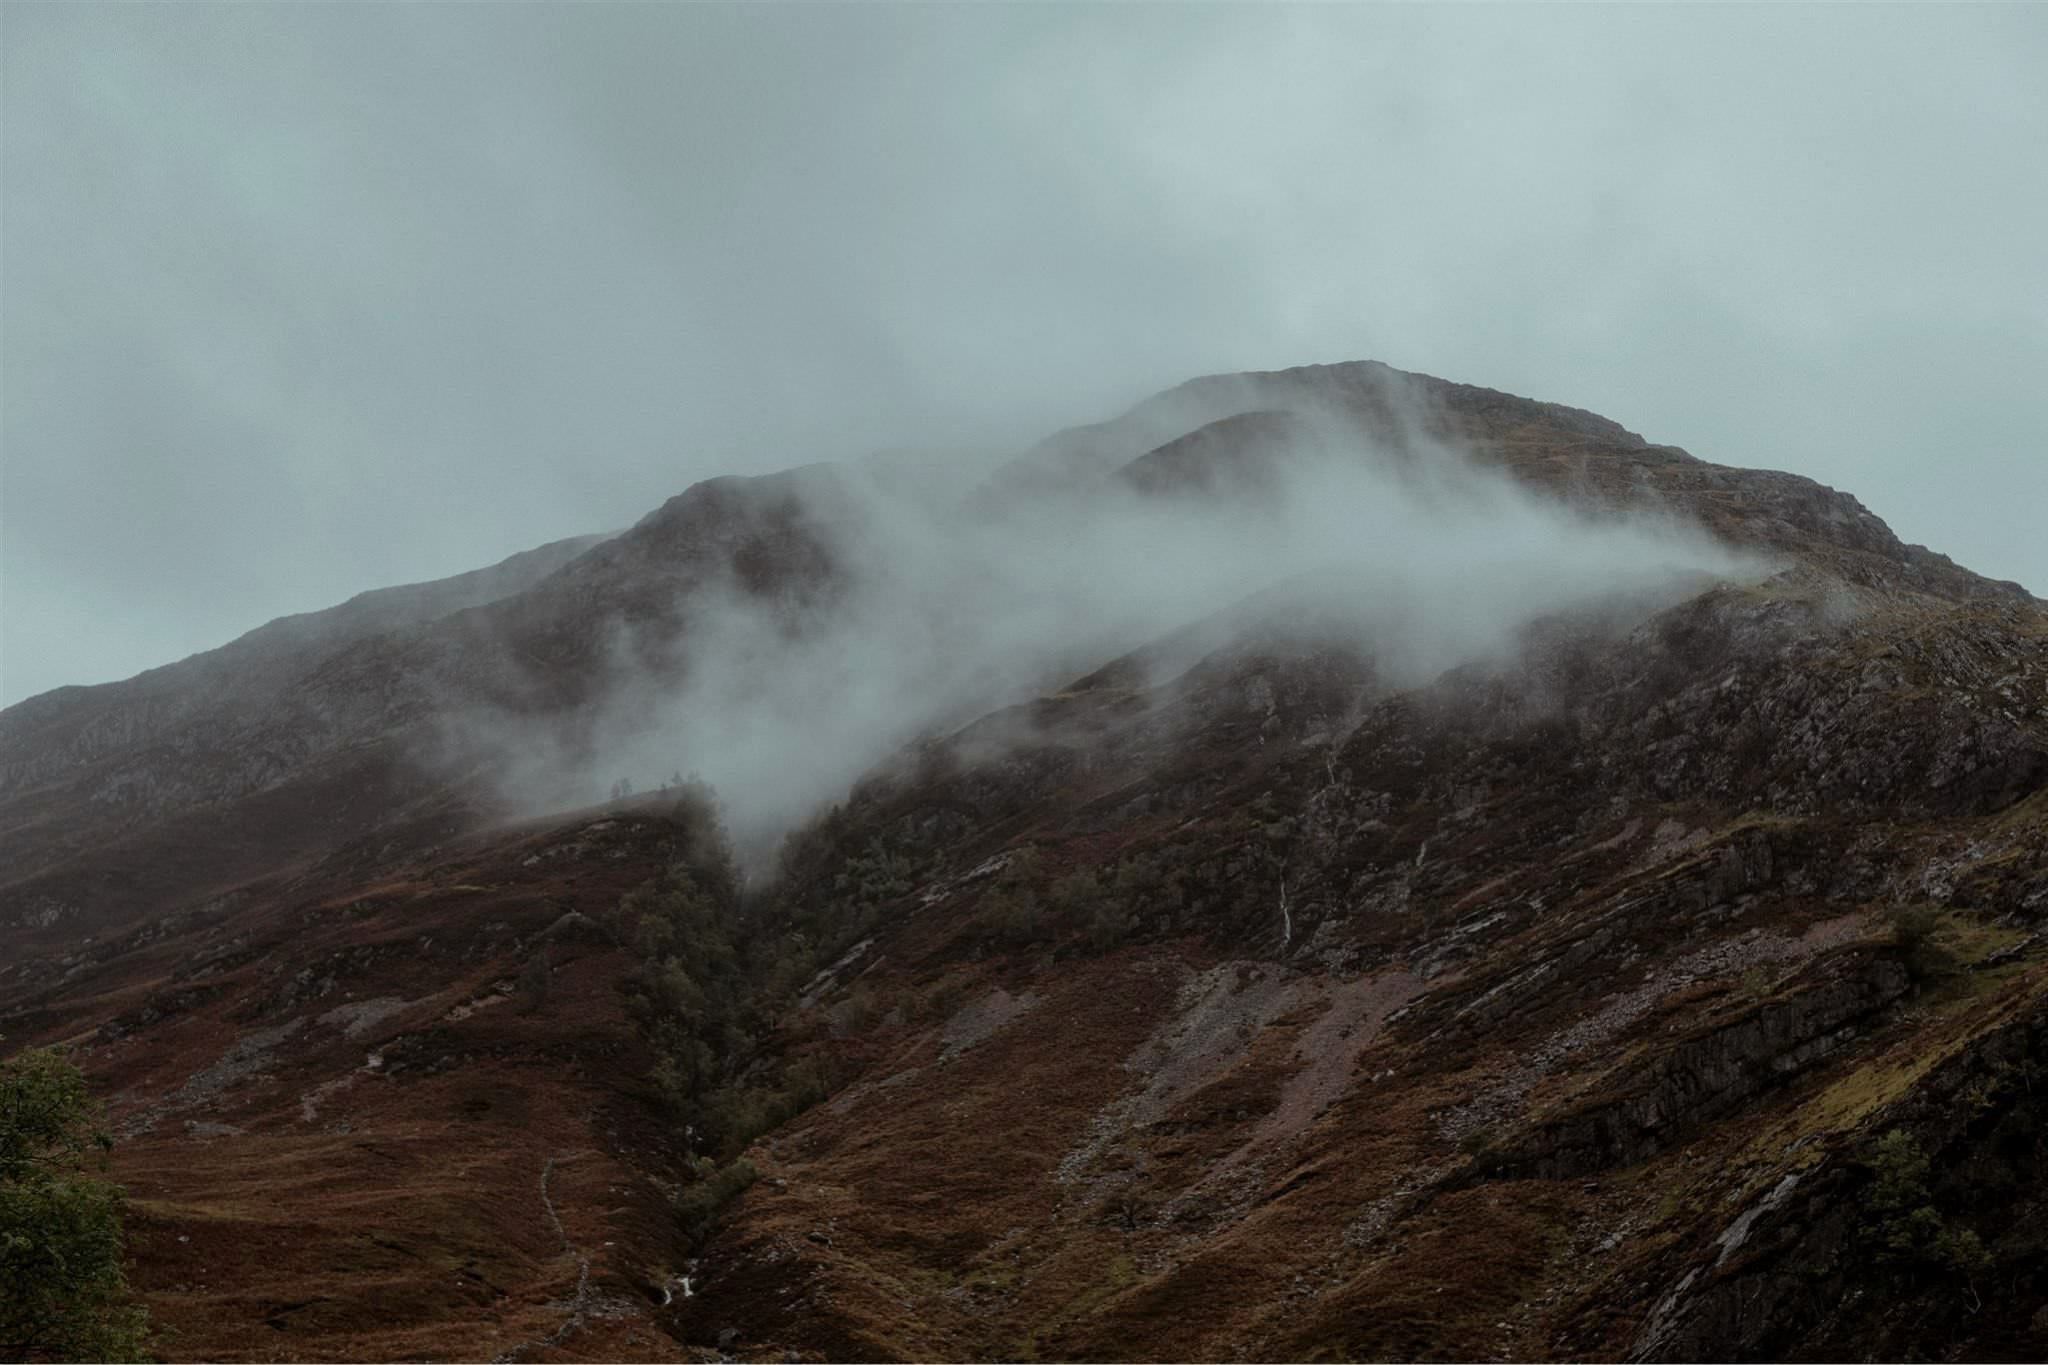 Misty mountains in Glencoe Scottish Highlands